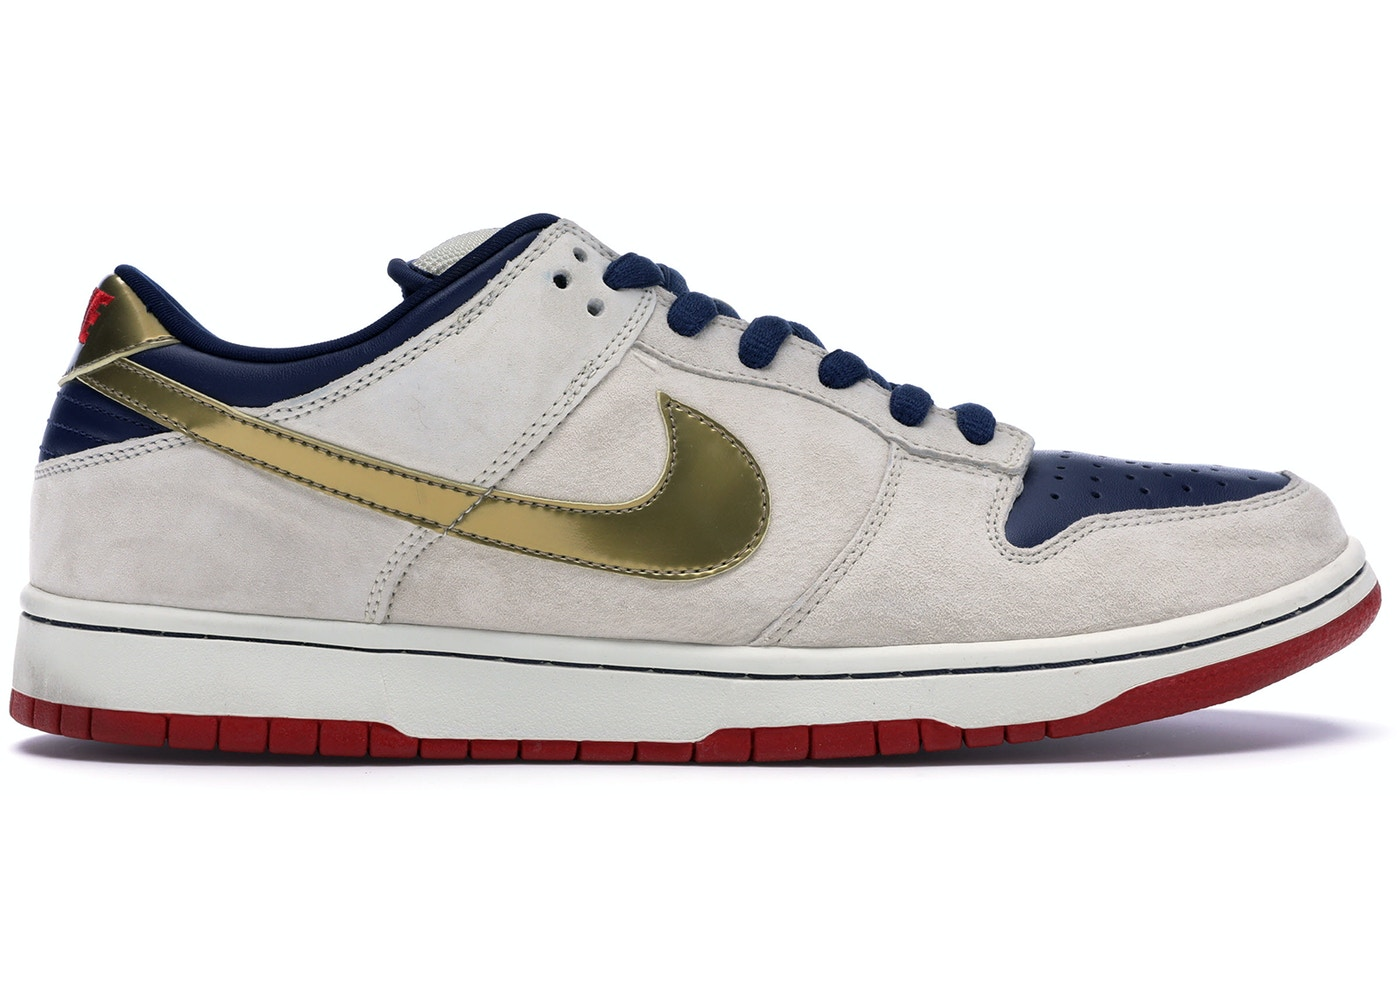 6c91bf2a8b4f HypeAnalyzer · Nike SB Dunk Low Old Spice